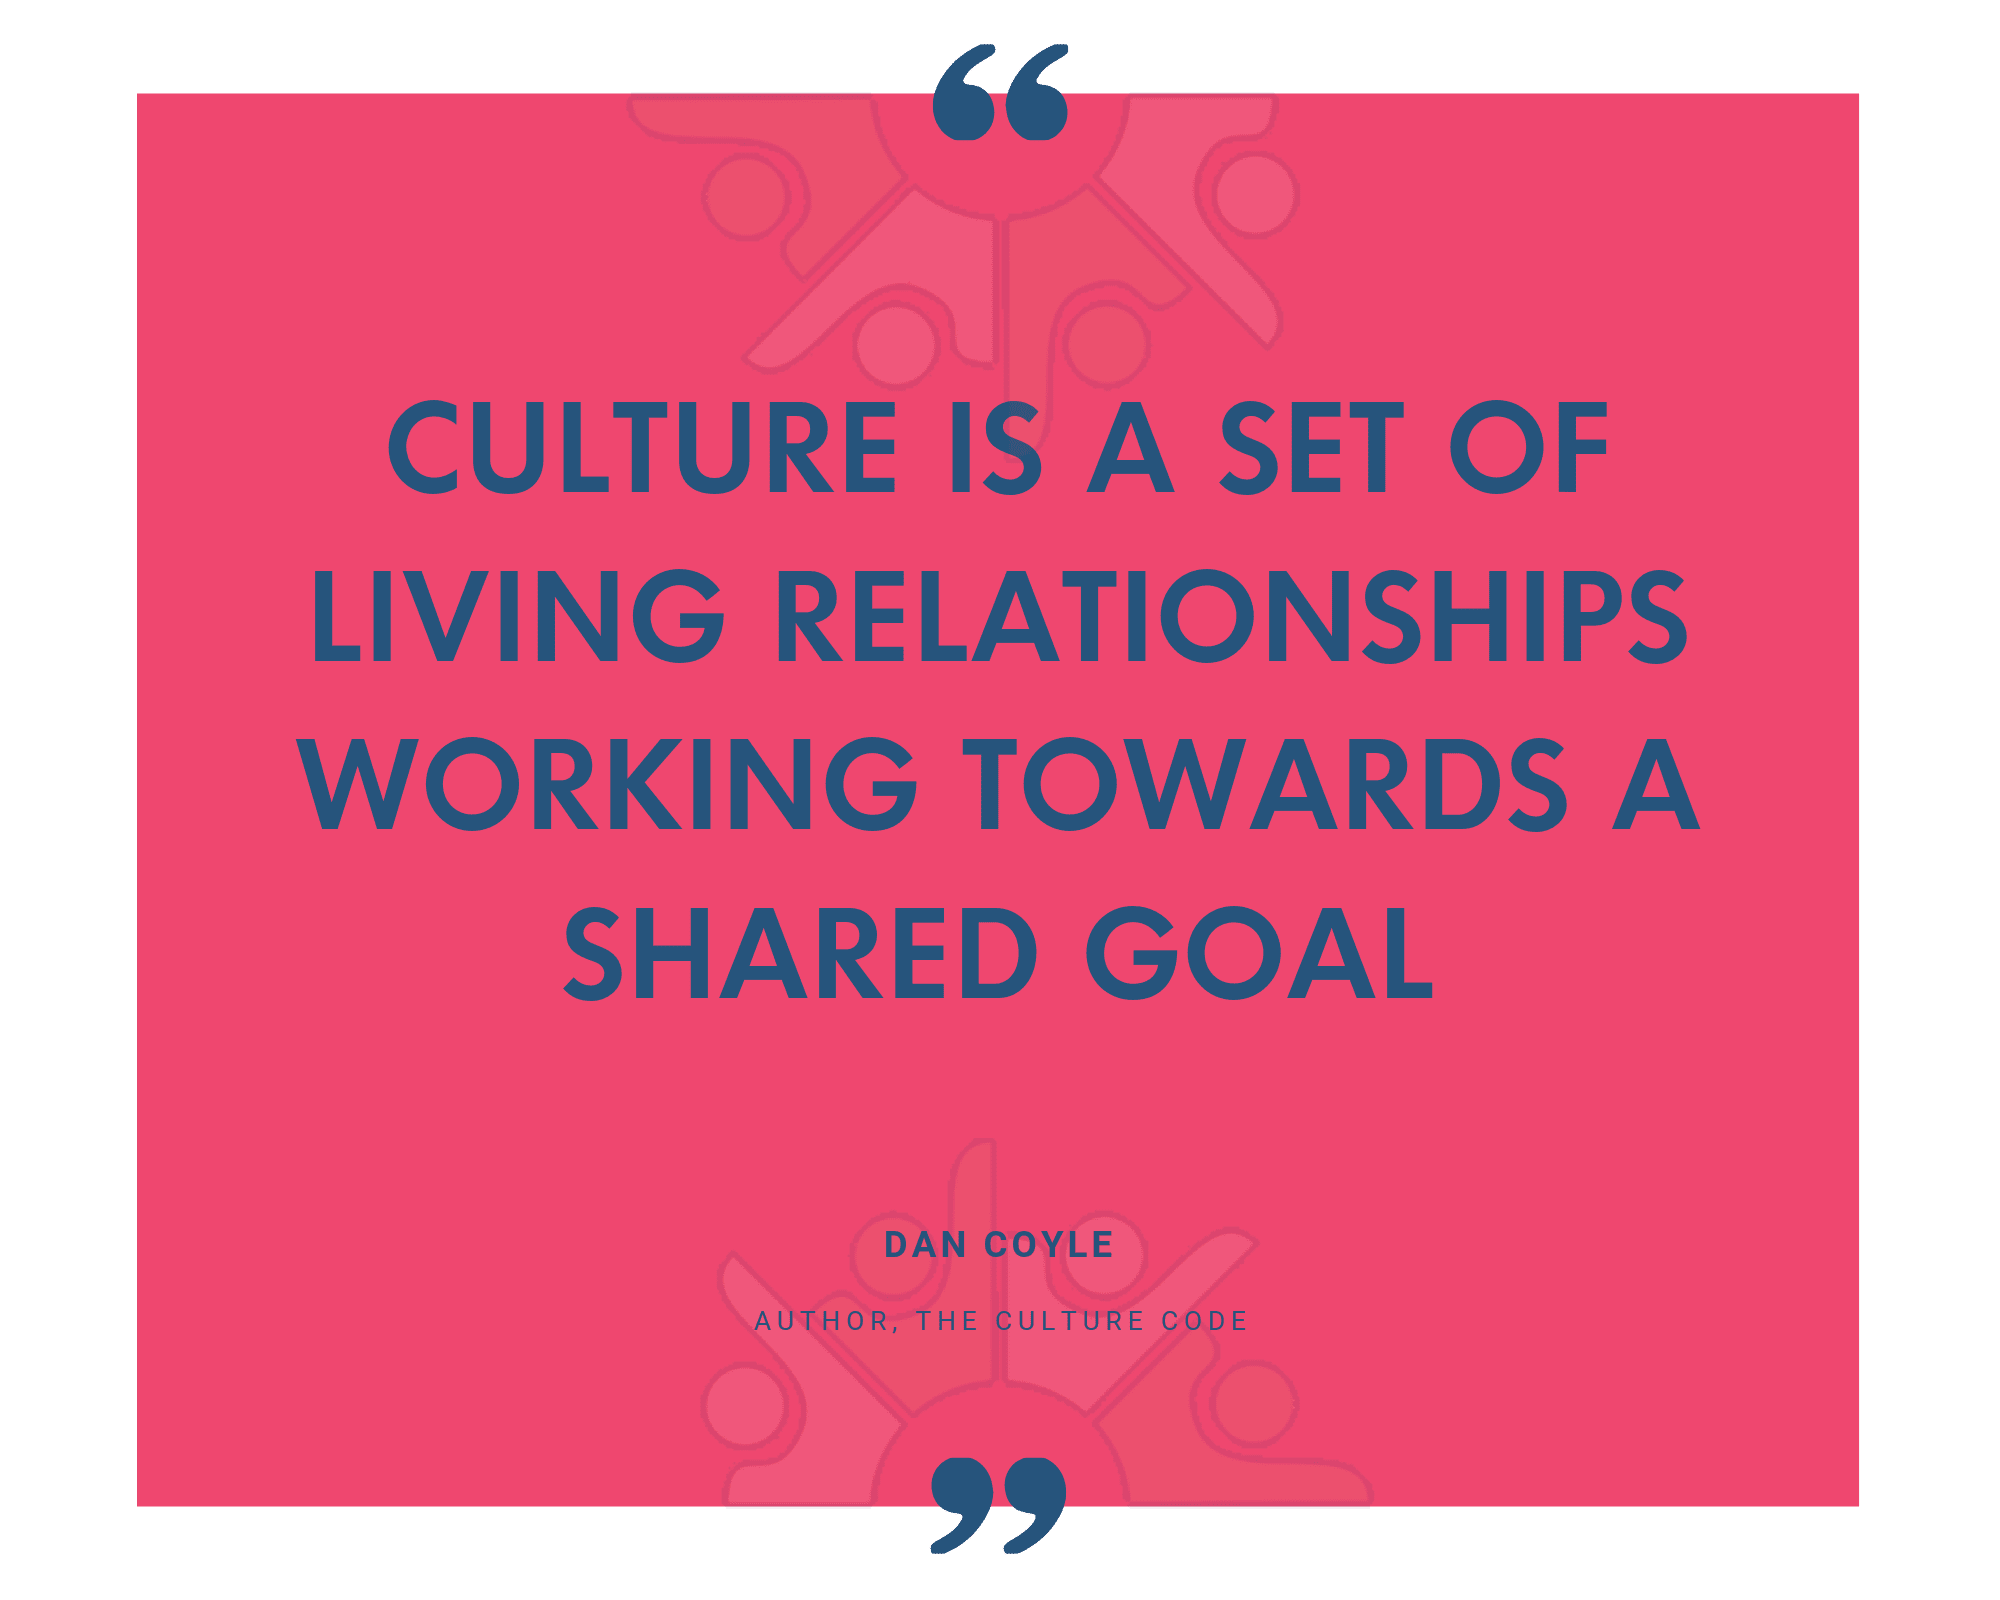 Culture is a set of living relationships working towards a shared goal